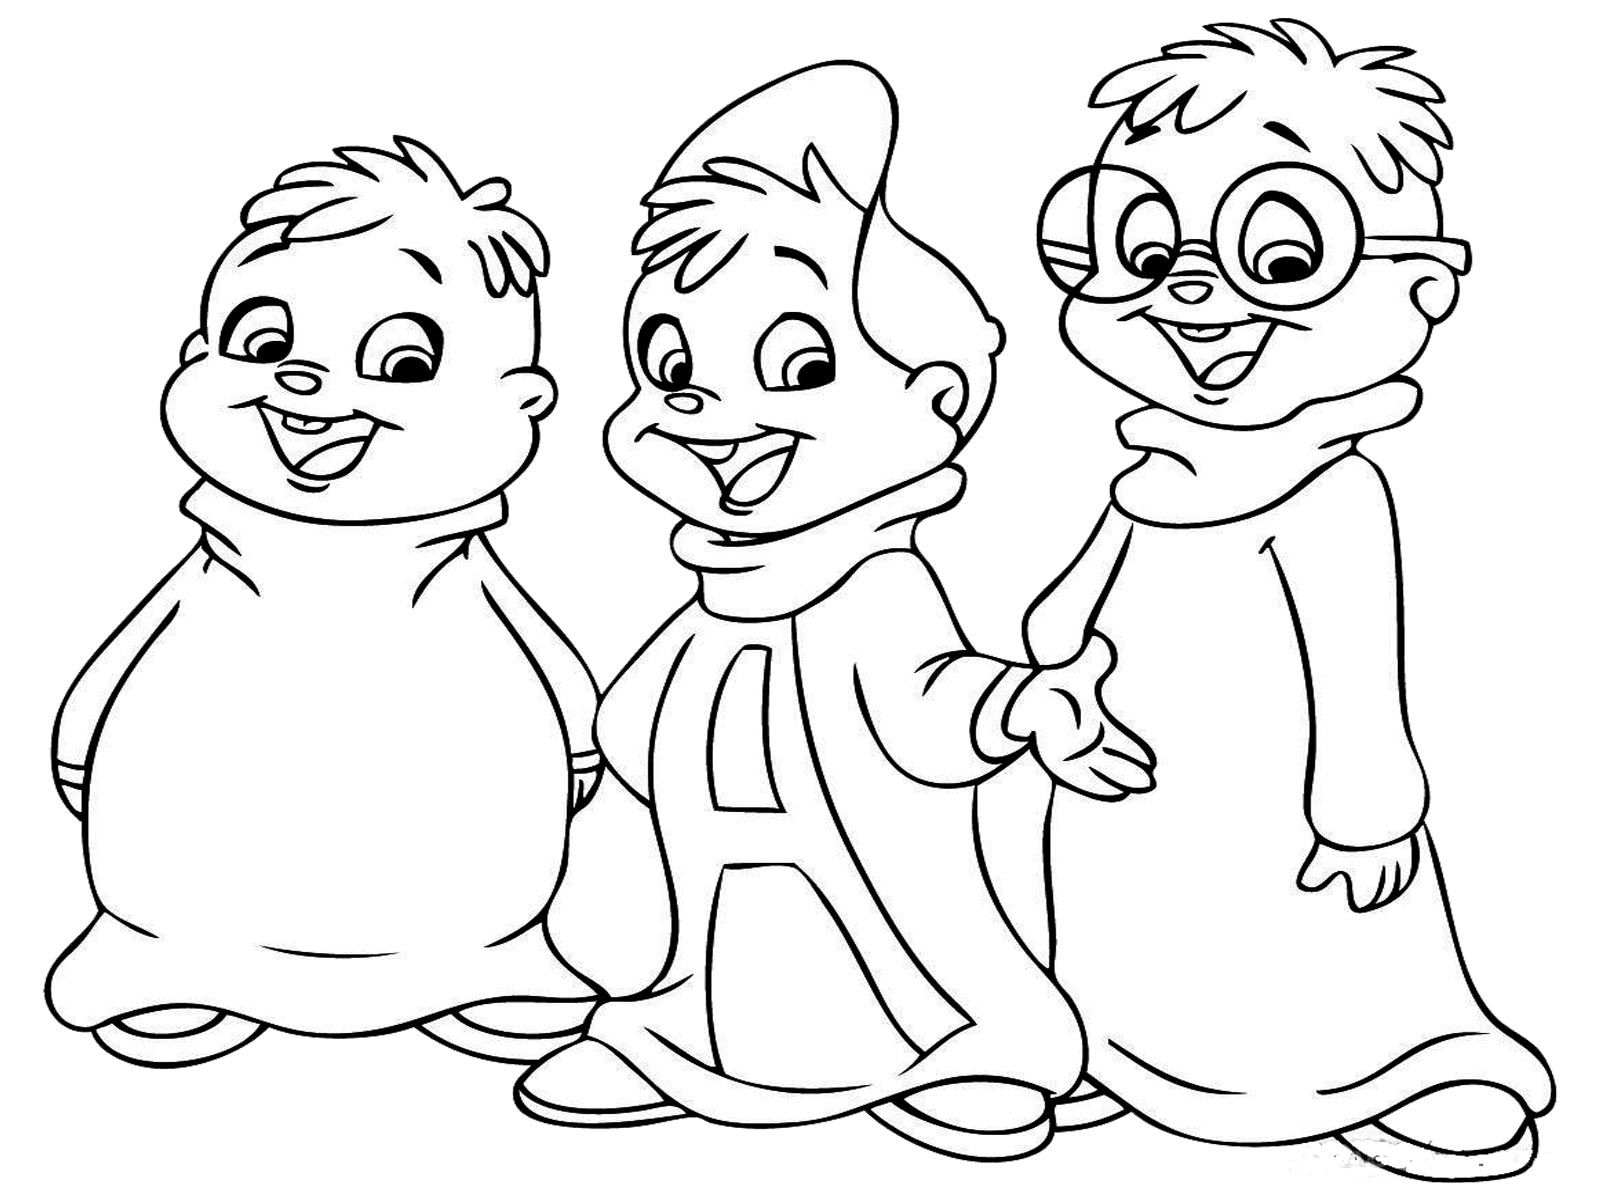 coloring pages cartoon snorks coloring pages coloringpages1001com pages cartoon coloring